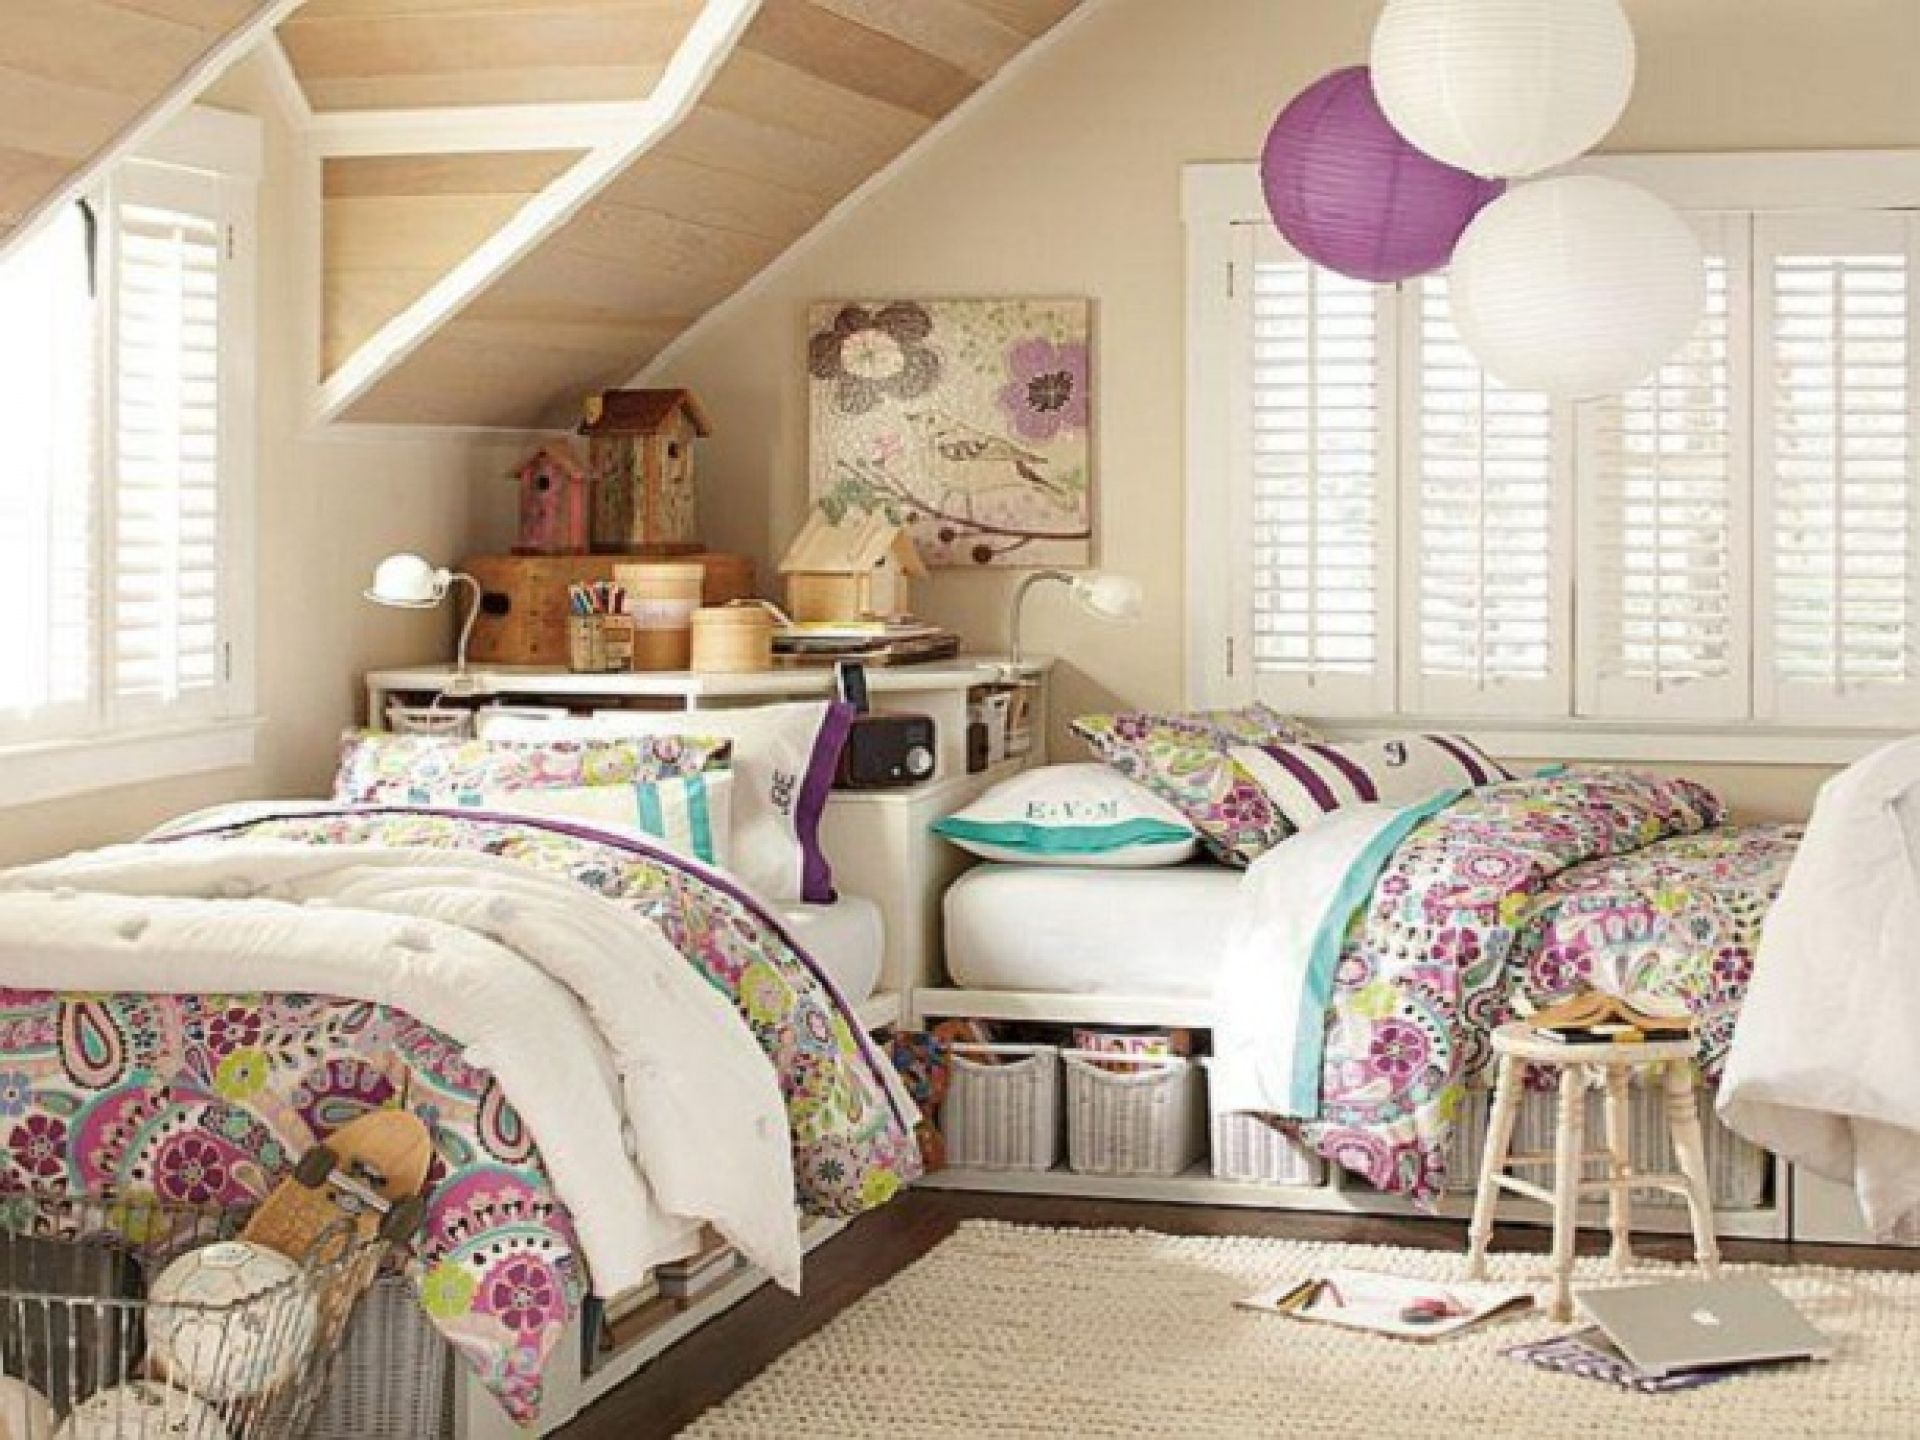 Choose Comfy Bunk Bed for Teen Bedroom Decor Idea with Globe Ceiling Ornaments and Flowery Wall Painting